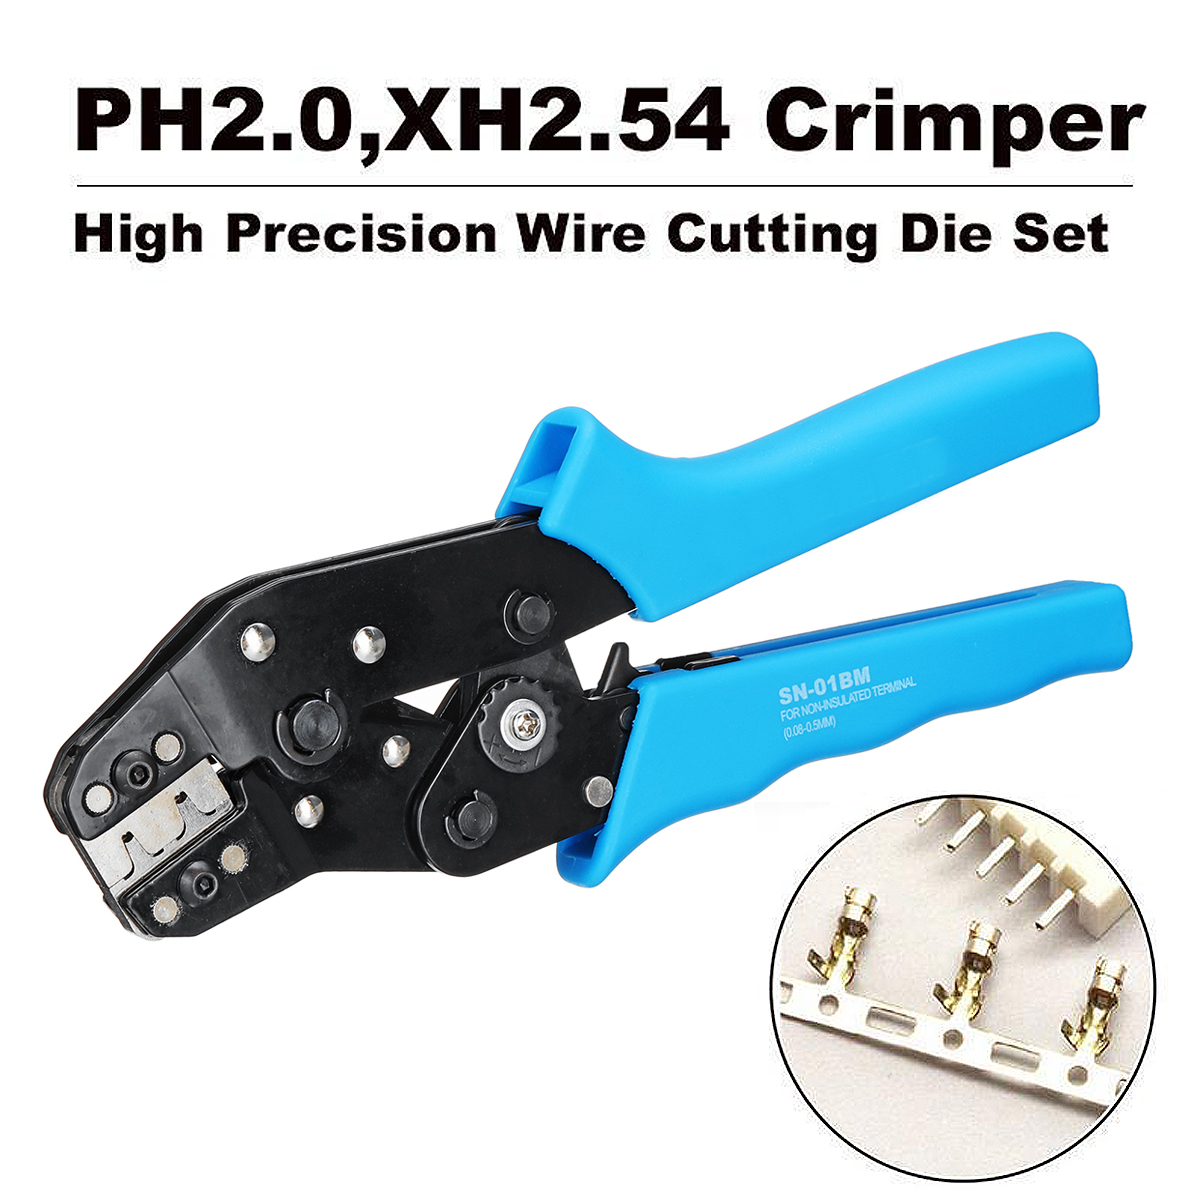 SN-01BM Terminal Wire Cable Crimping Pliers Tool for Dupont PH2.0 XH2.54 AMG28-20 KF2510 JST Hand Tool Plier Crimper sn 01bm ph2 0 xh2 54 dupont sm plug terminal crimping tool crimping pliers for d sub terminals sq mm 0 08 0 5 awg28 20